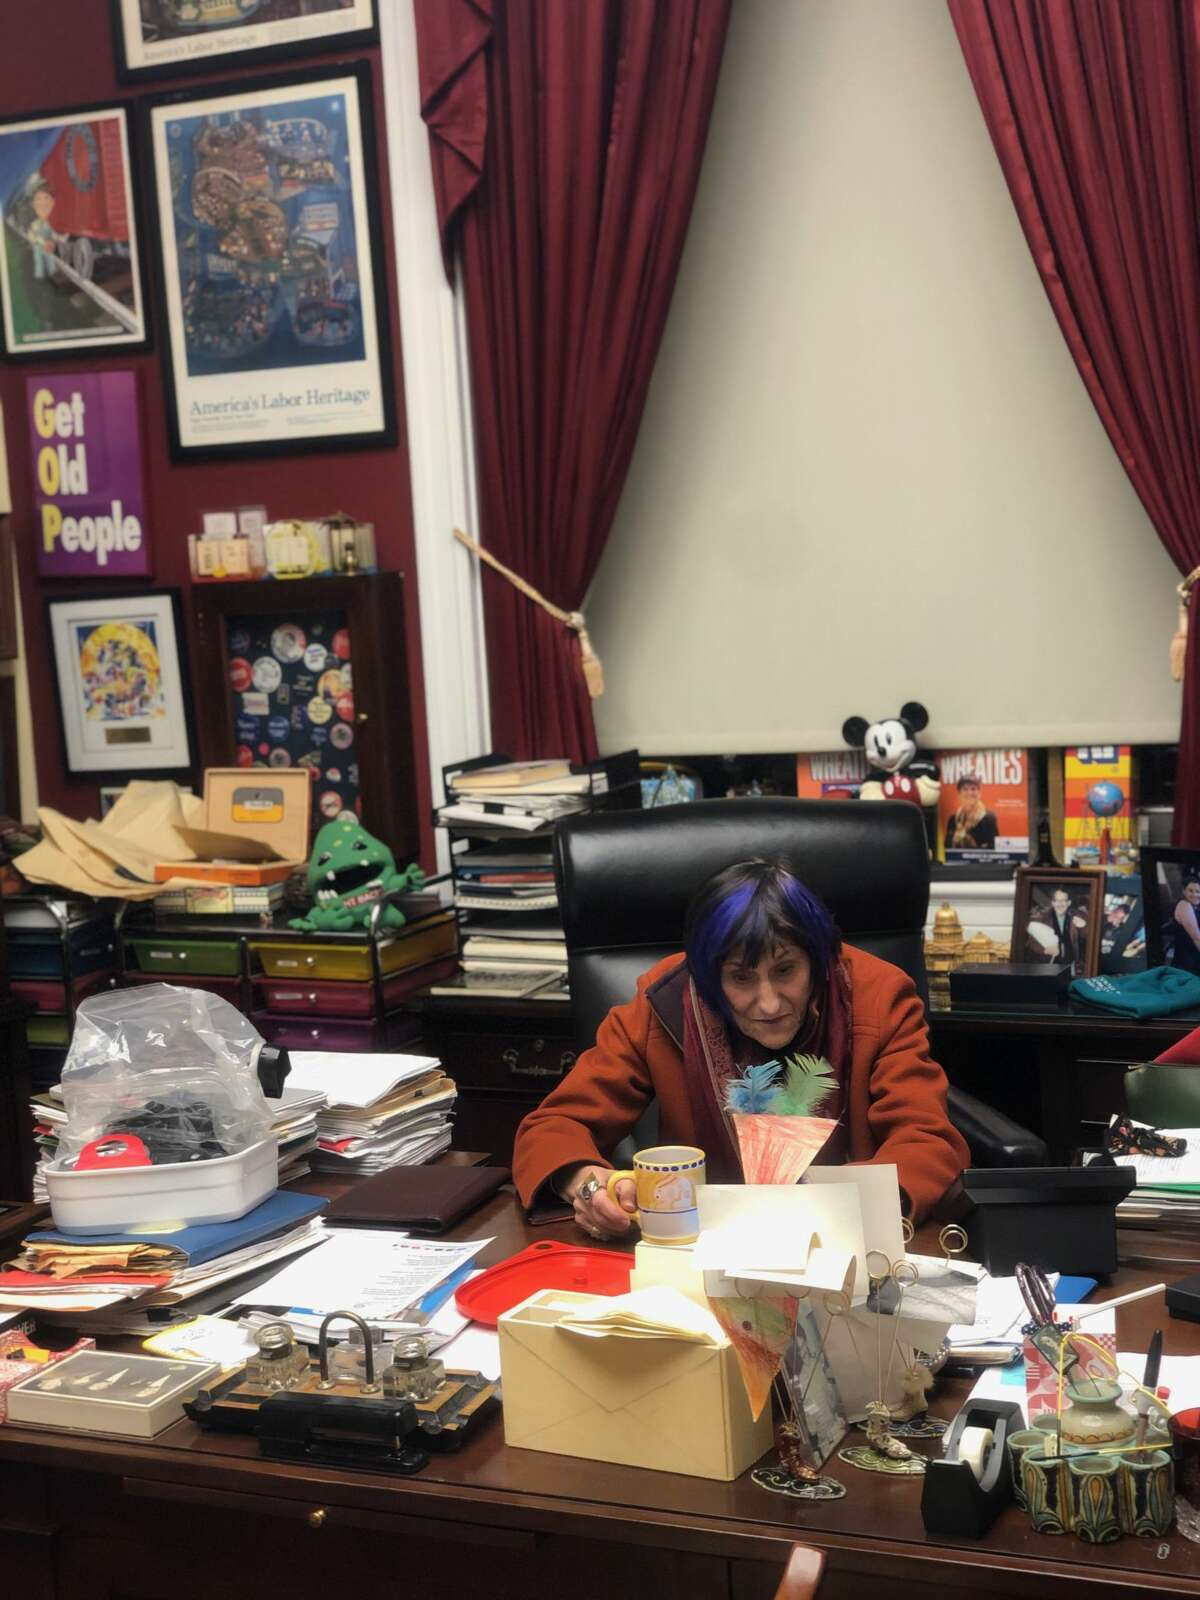 Rep. Rosa DeLauro, D-3 in her office, talking on the phone after the Capitol was cleared of rioters and lawmakers were released from lockdown. Her gas mask which she has to wear in the House chamber today is on her desk.